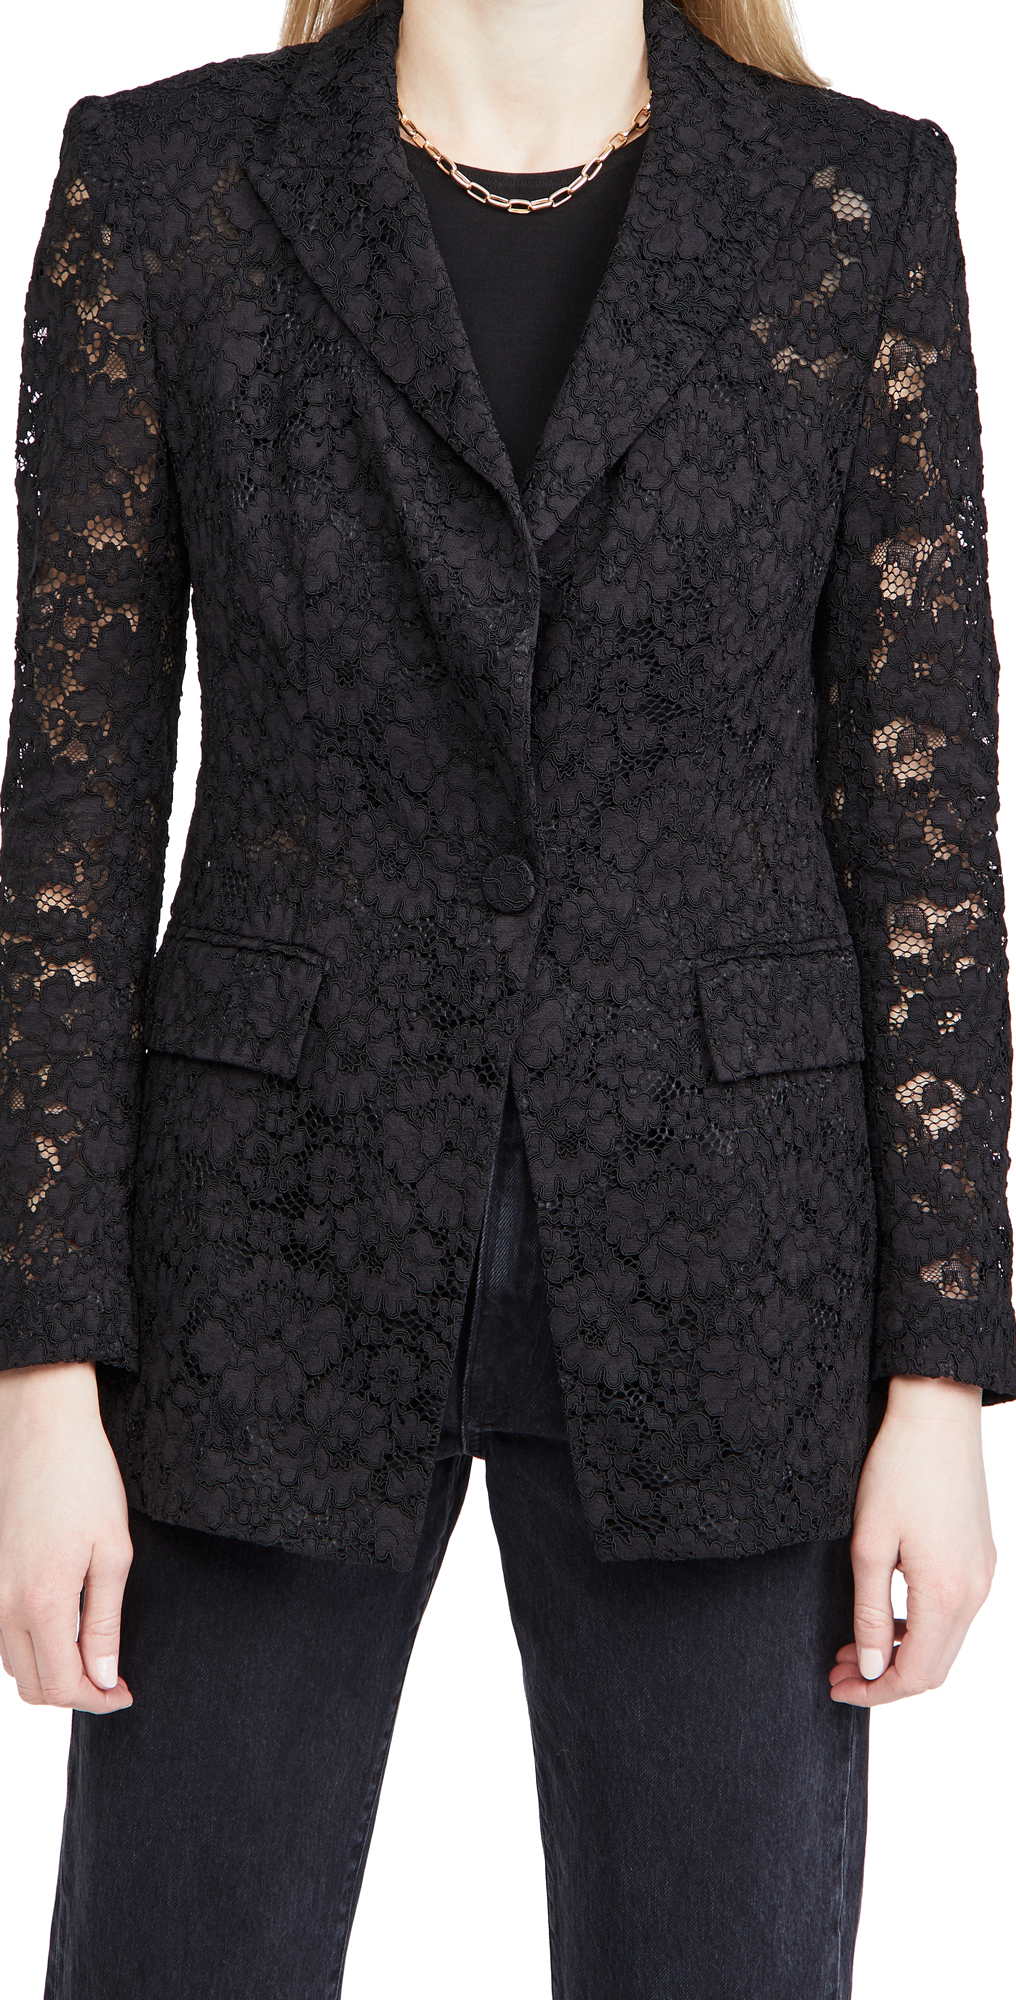 Veronica Beard Long And Lean Lace Jacket